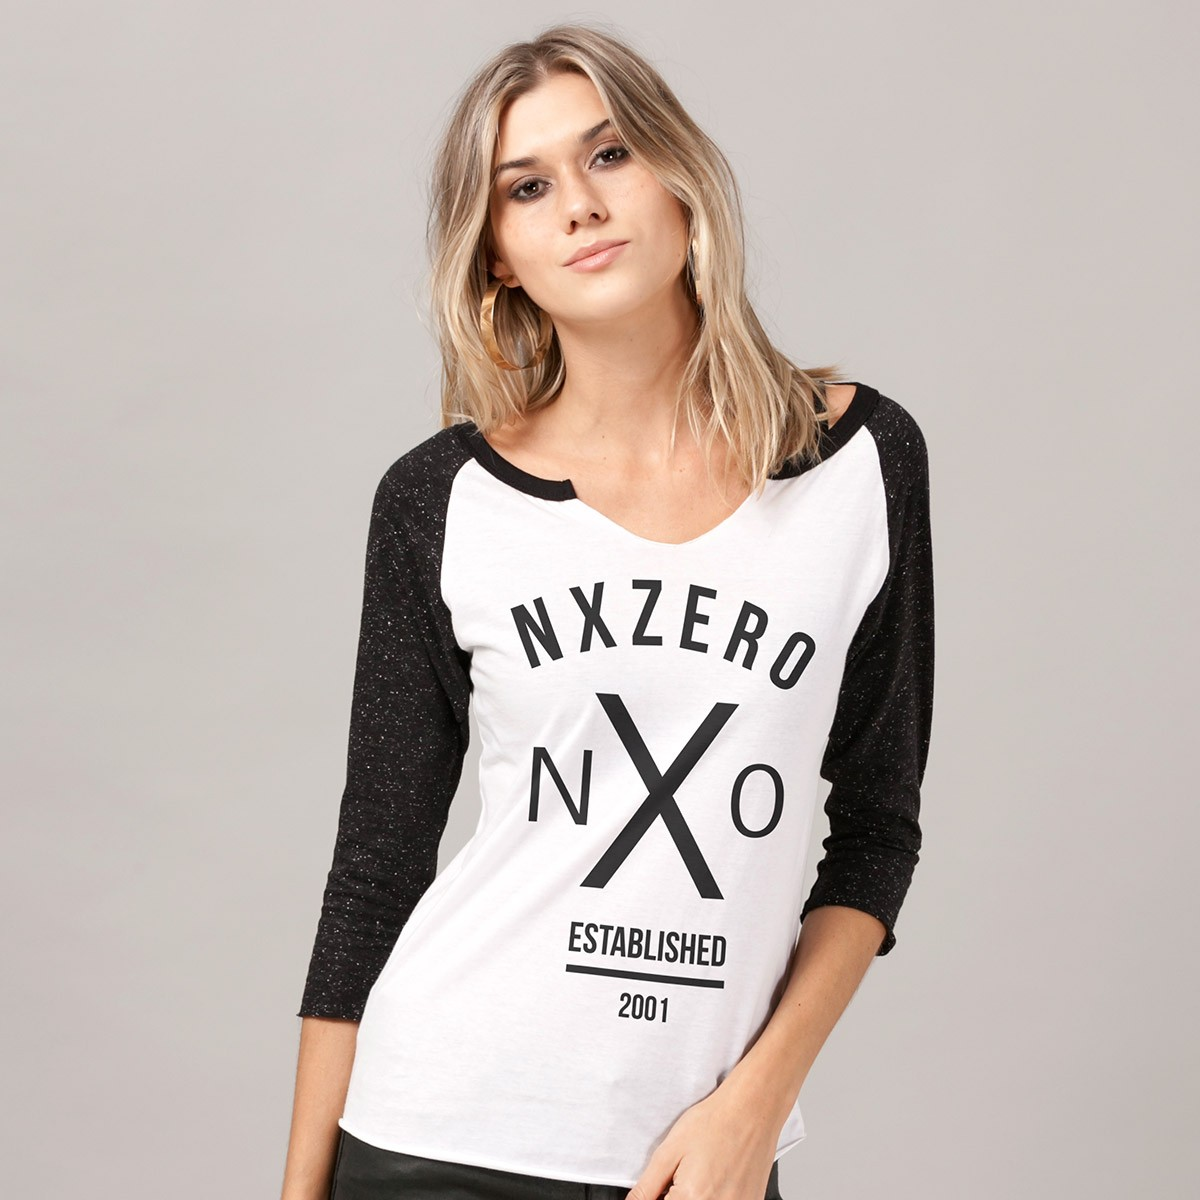 Camiseta Manga Longa Feminina NXZero Established